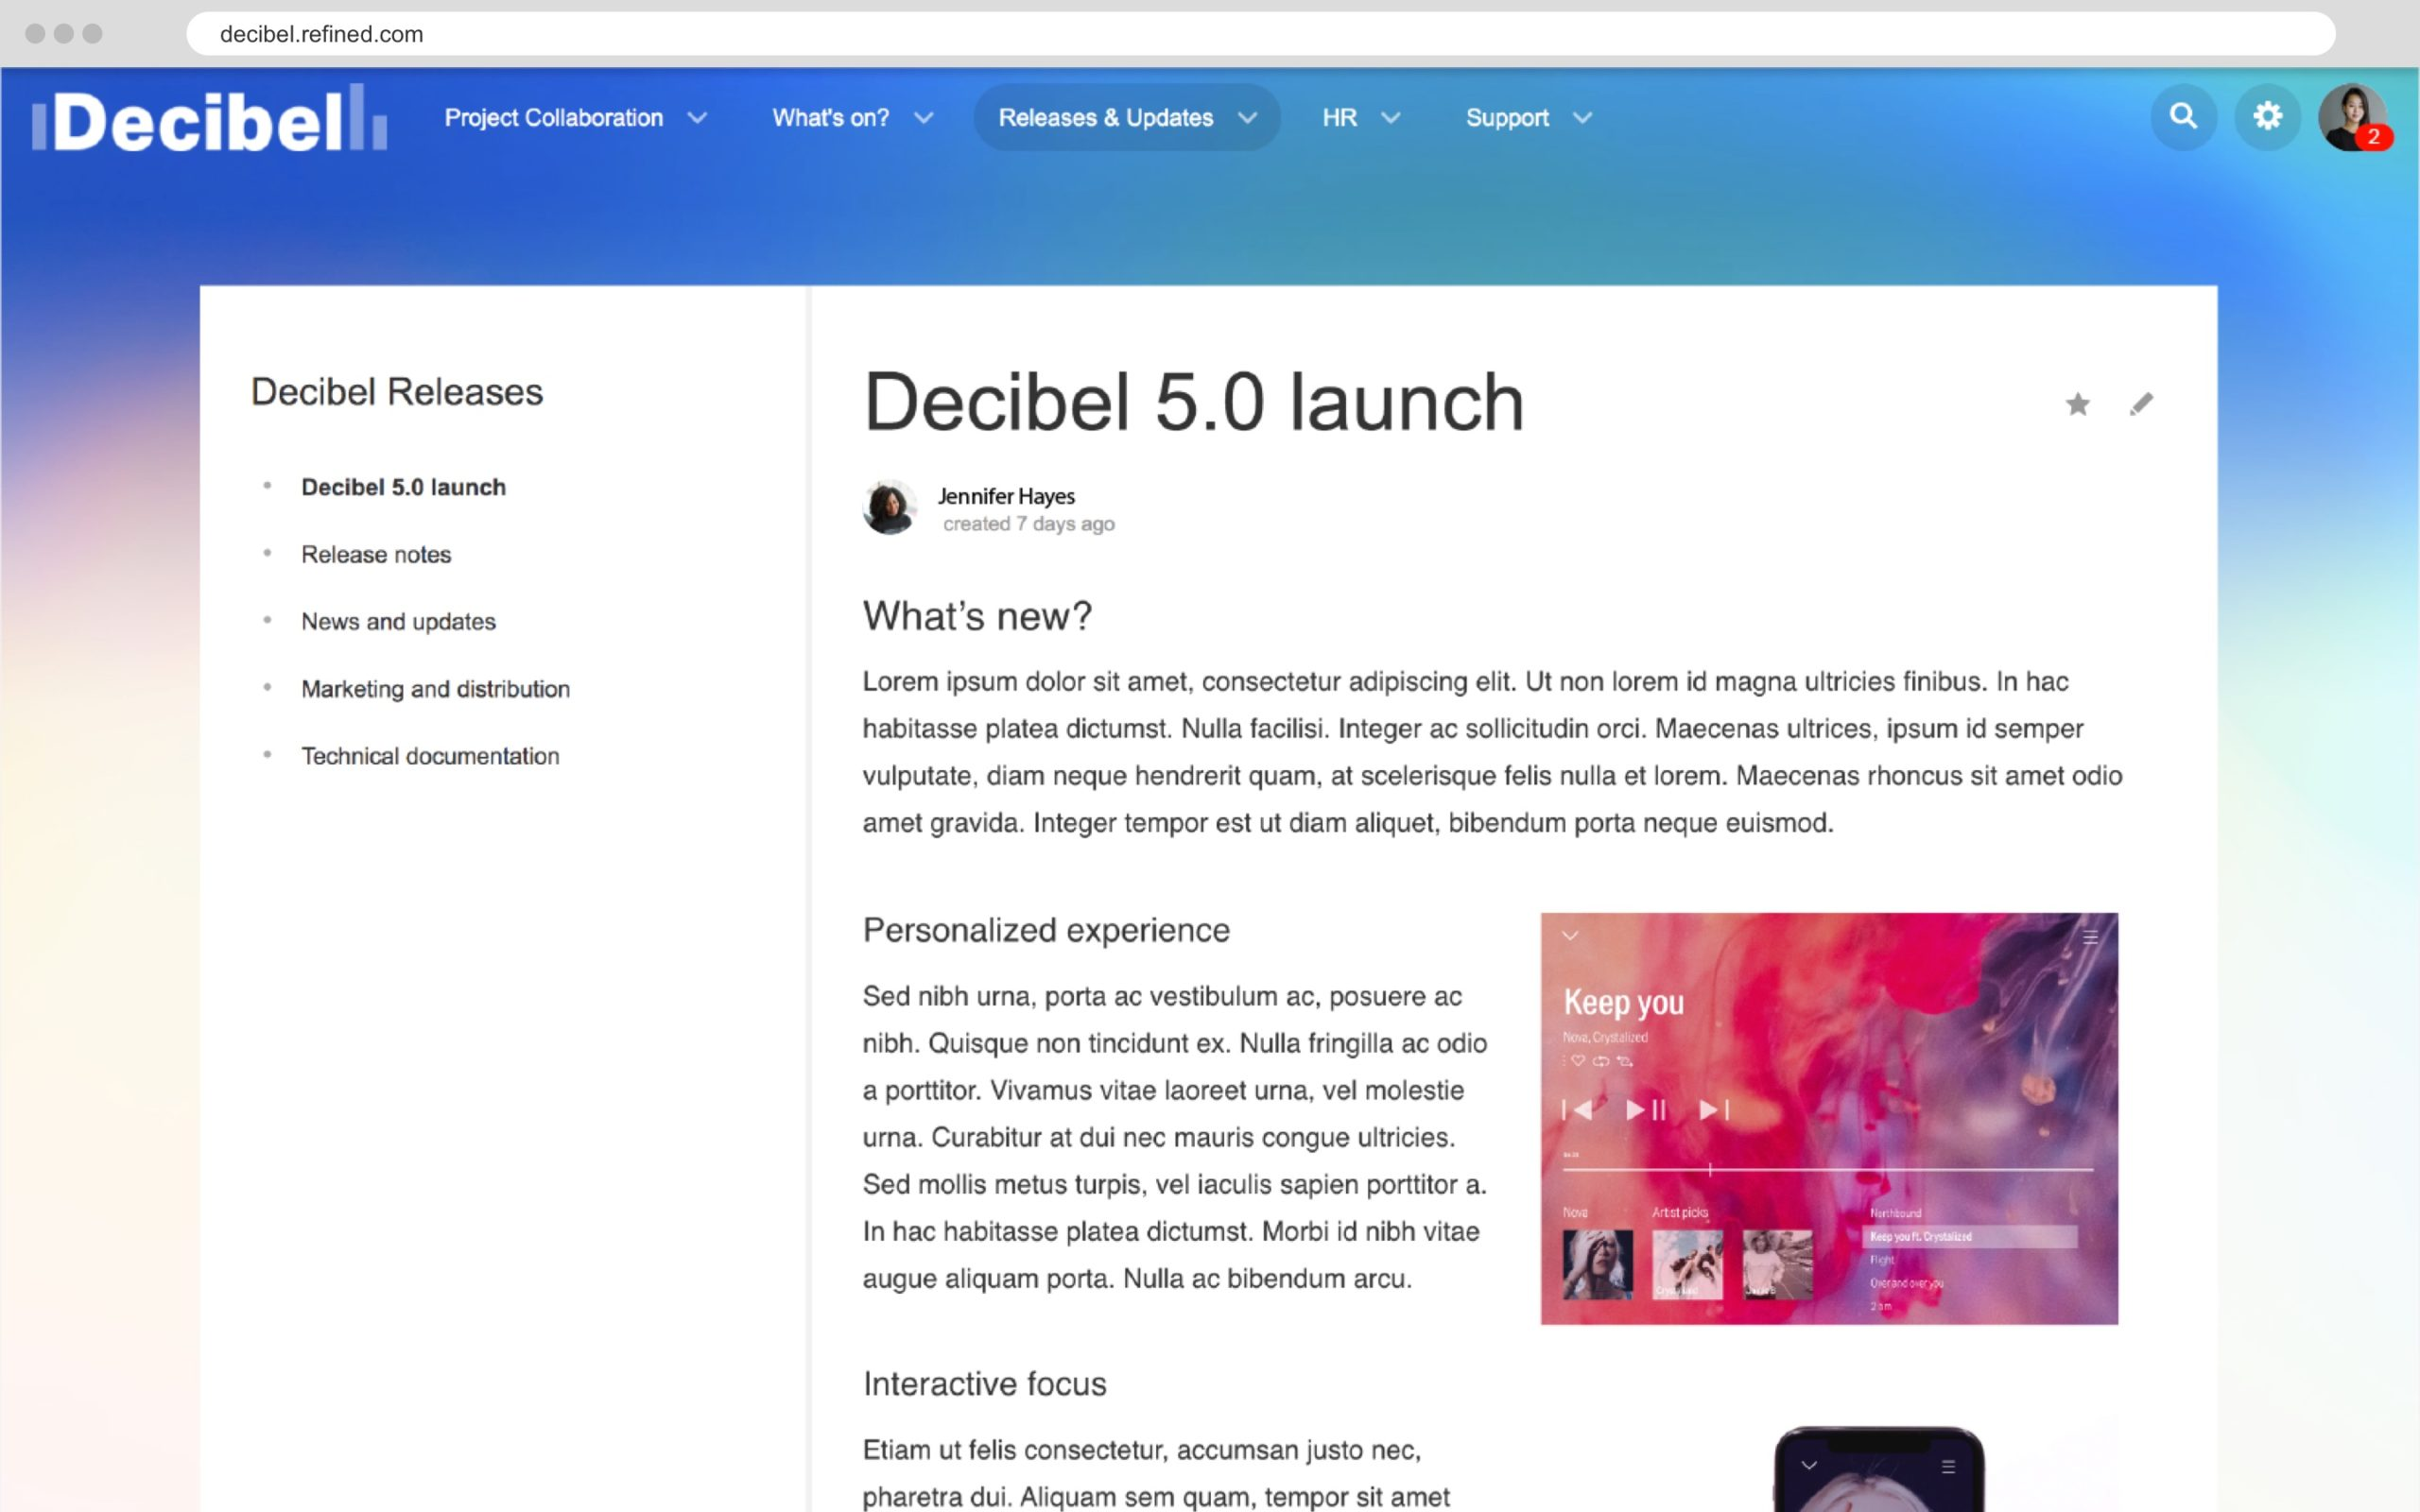 confluence-page-in-refined-decibel-theme